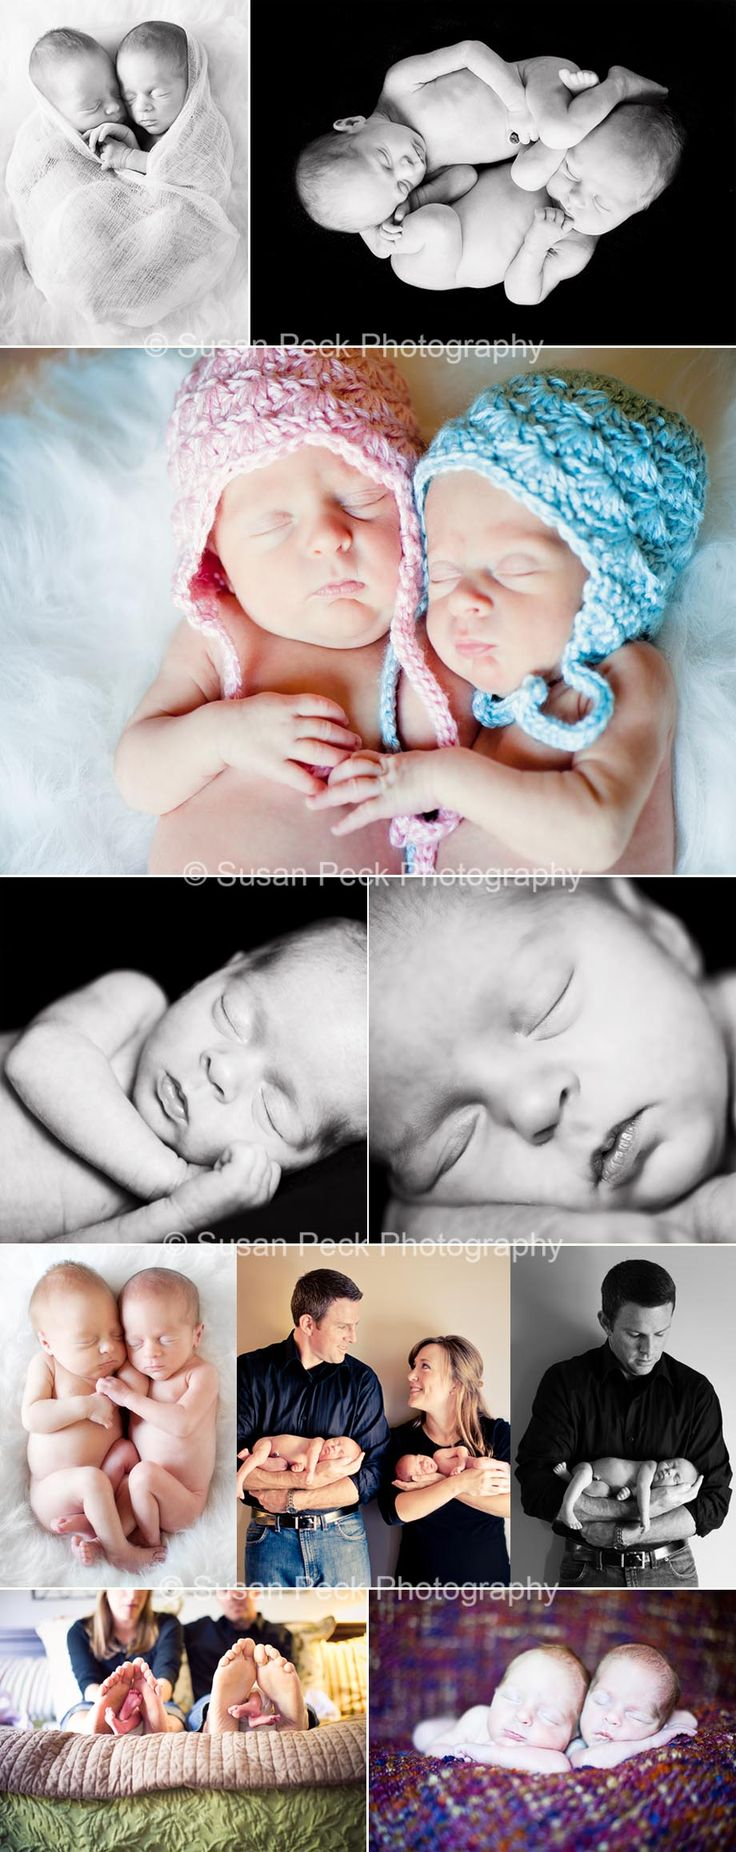 © Susan Peck Photography #newborn #twins #baby